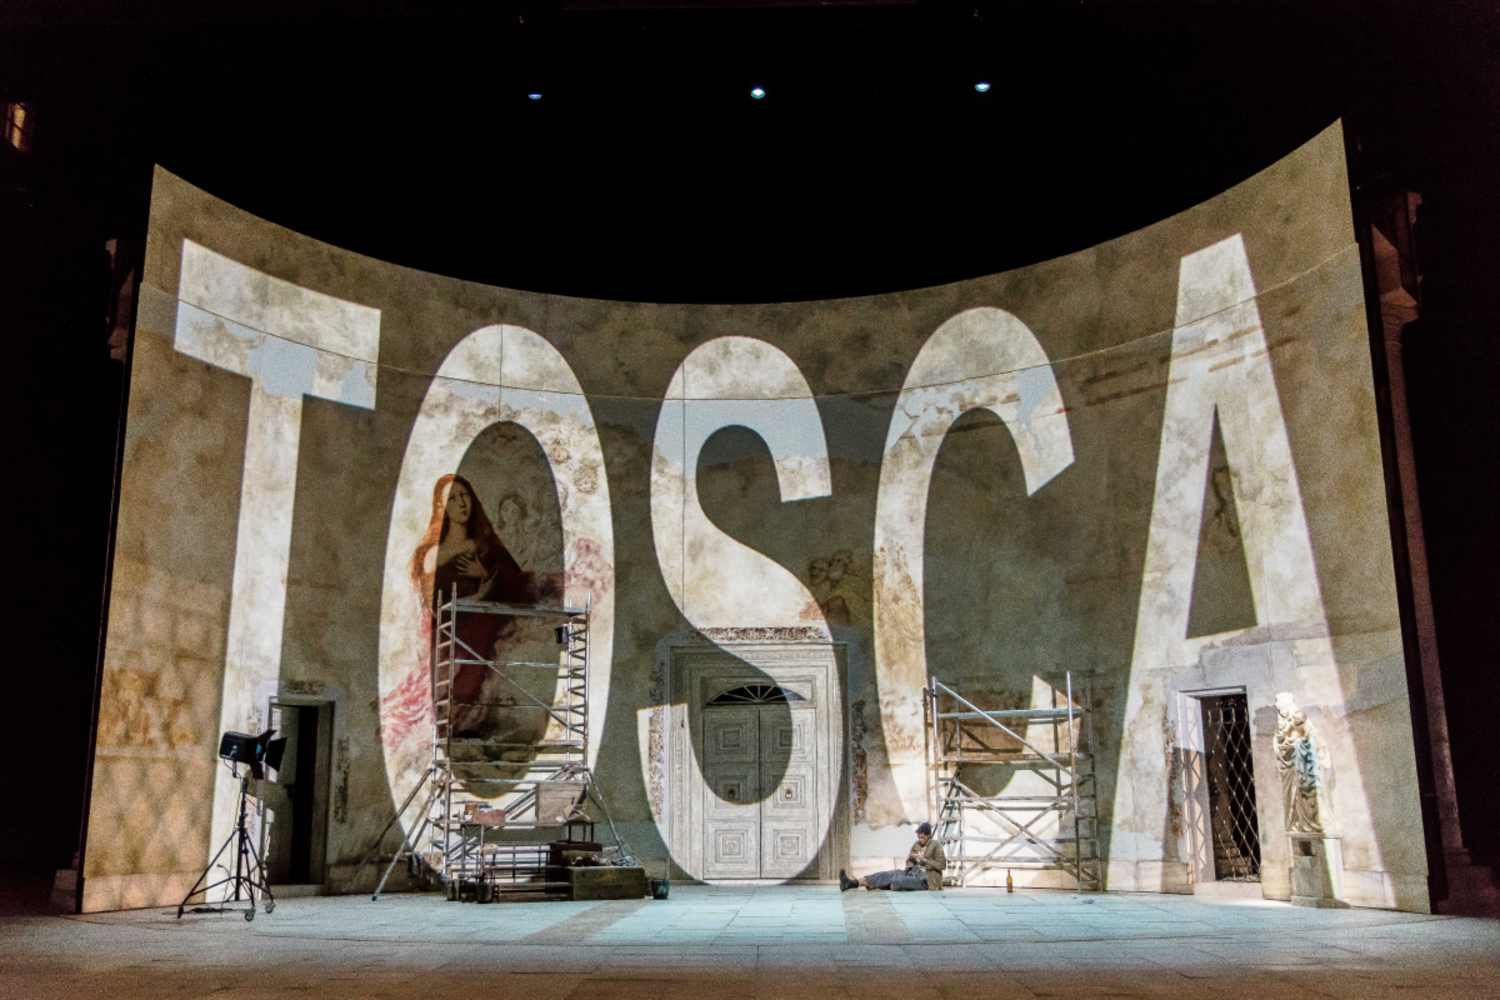 Pictured: A flat with an huge inscription reading 'Tosca'